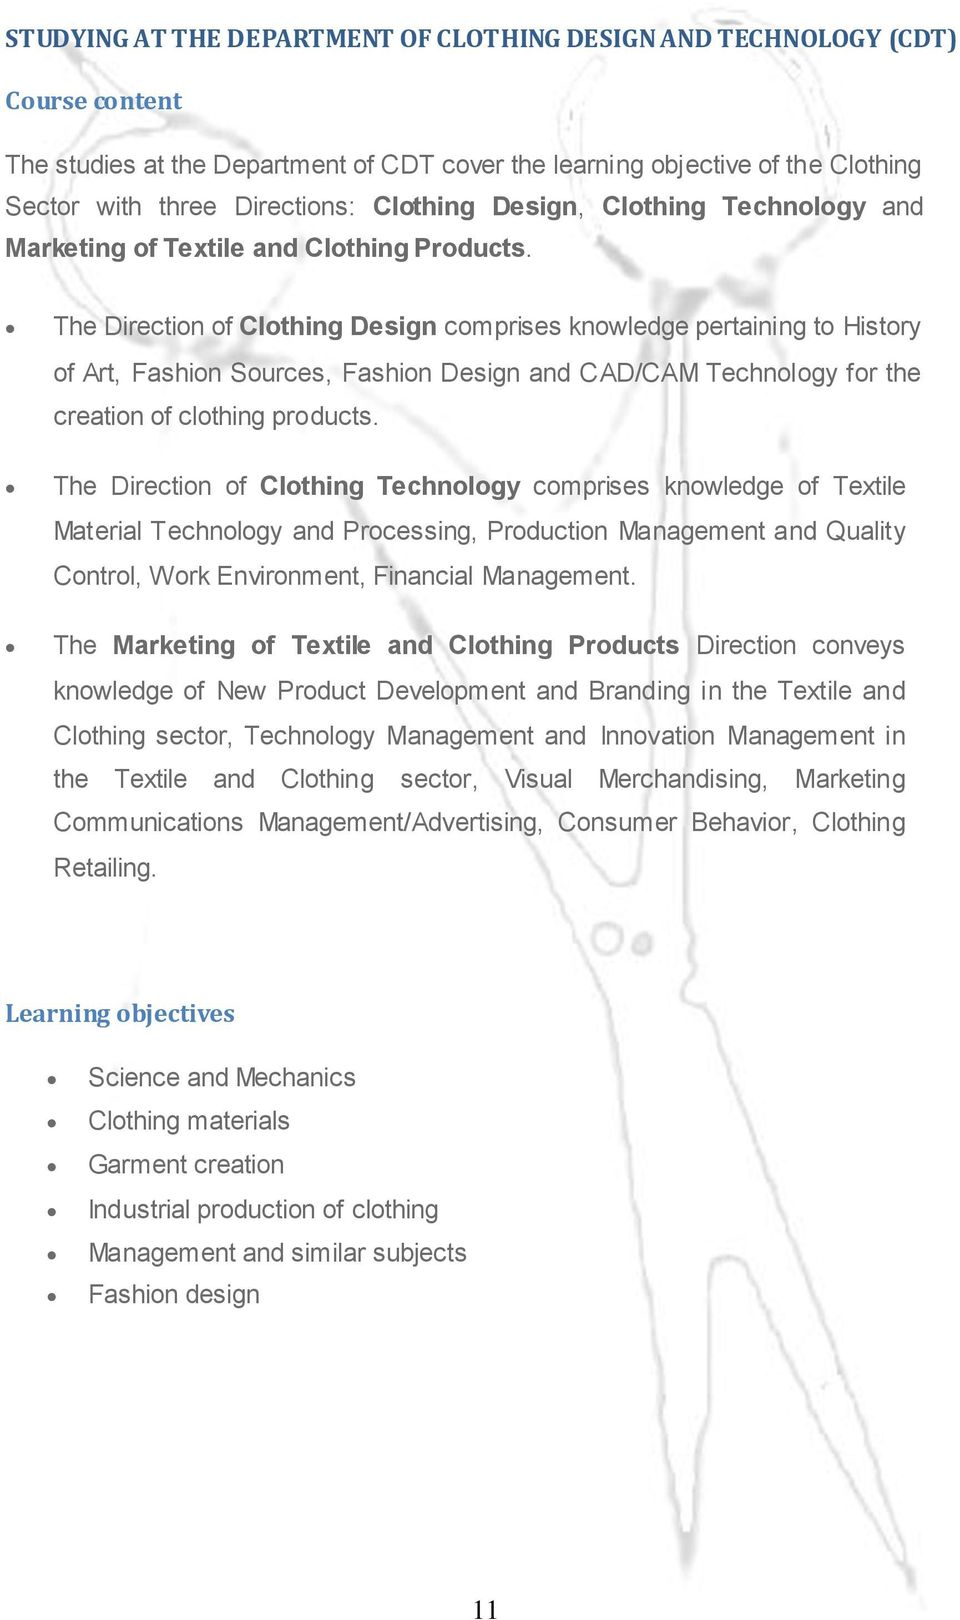 The Direction of Clothing Design comprises knowledge pertaining to History of Art, Fashion Sources, Fashion Design and CAD/CAM Technology for the creation of clothing products.